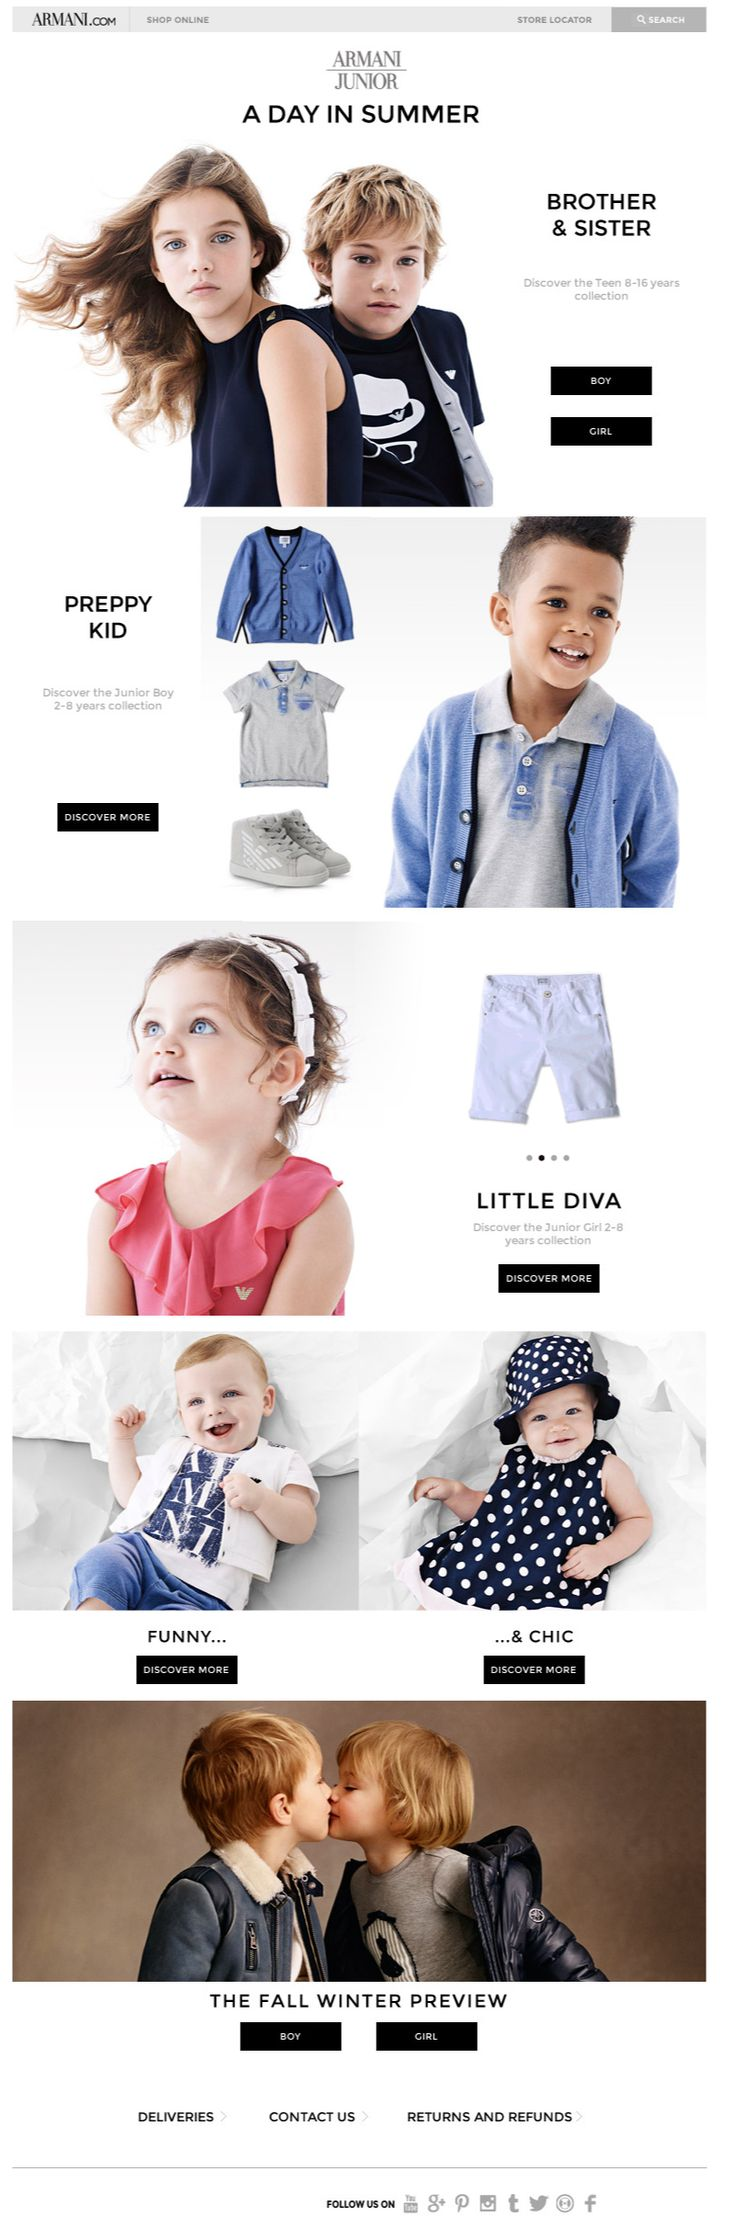 Armani Junior; newsletter, email marketing, design. / could use it as type of shopper and show products associated